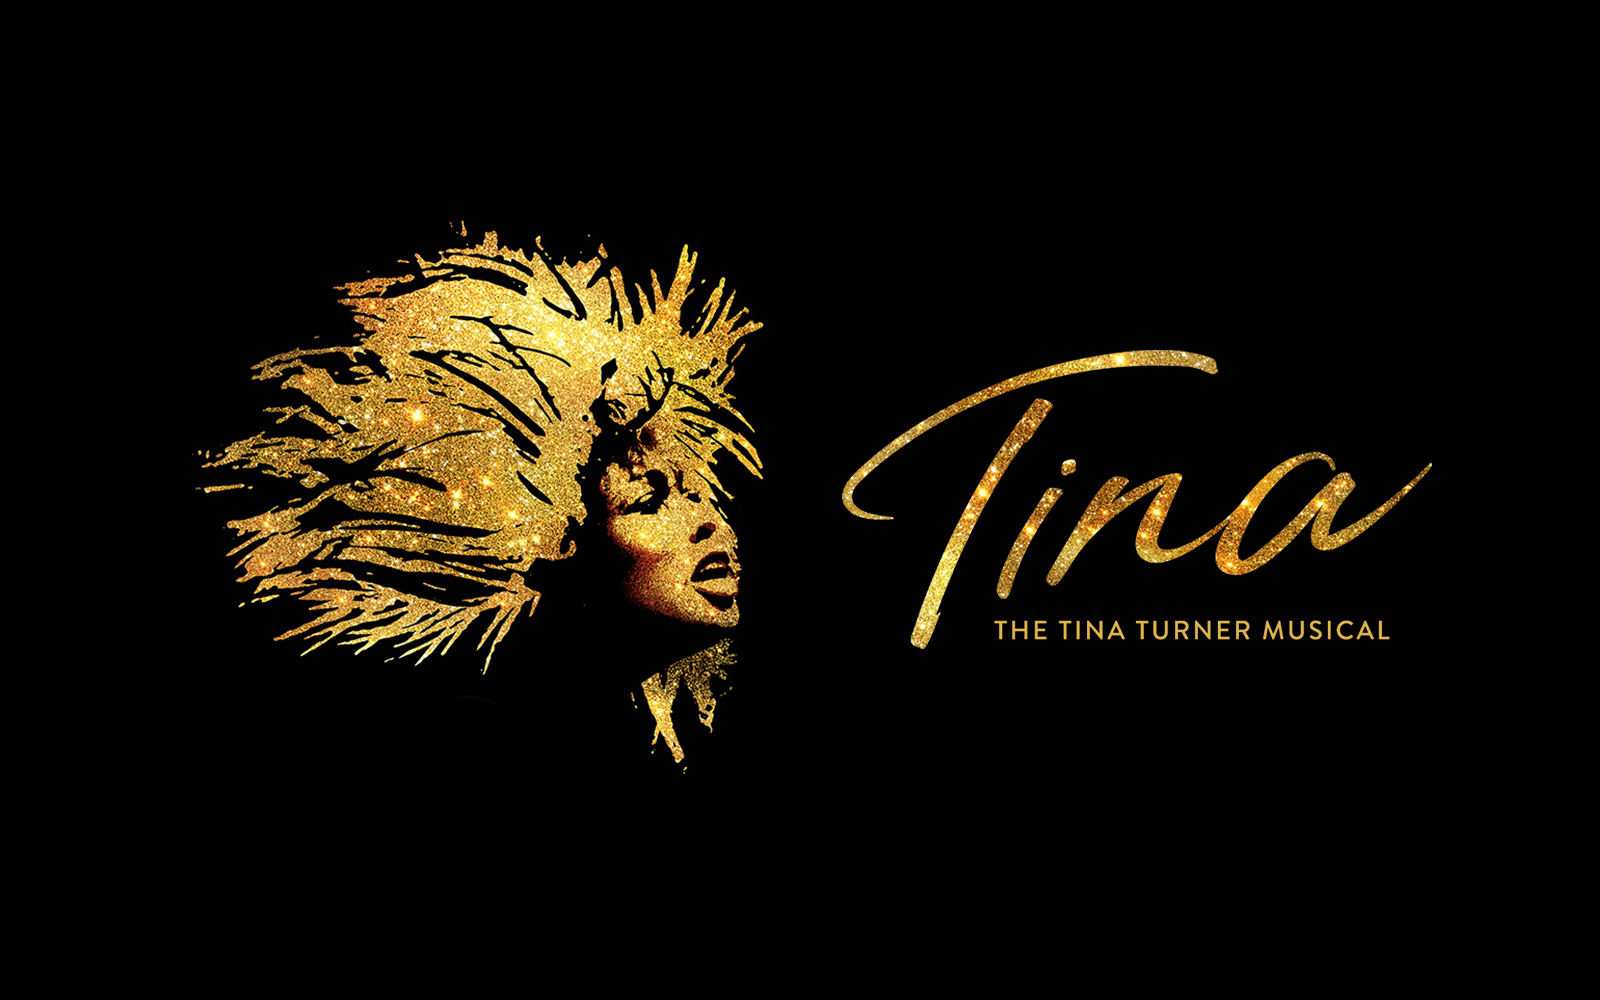 7d270fbd c6d8 4ad8 850a 83097eb946c5 9162 london tina  the tina turner 01